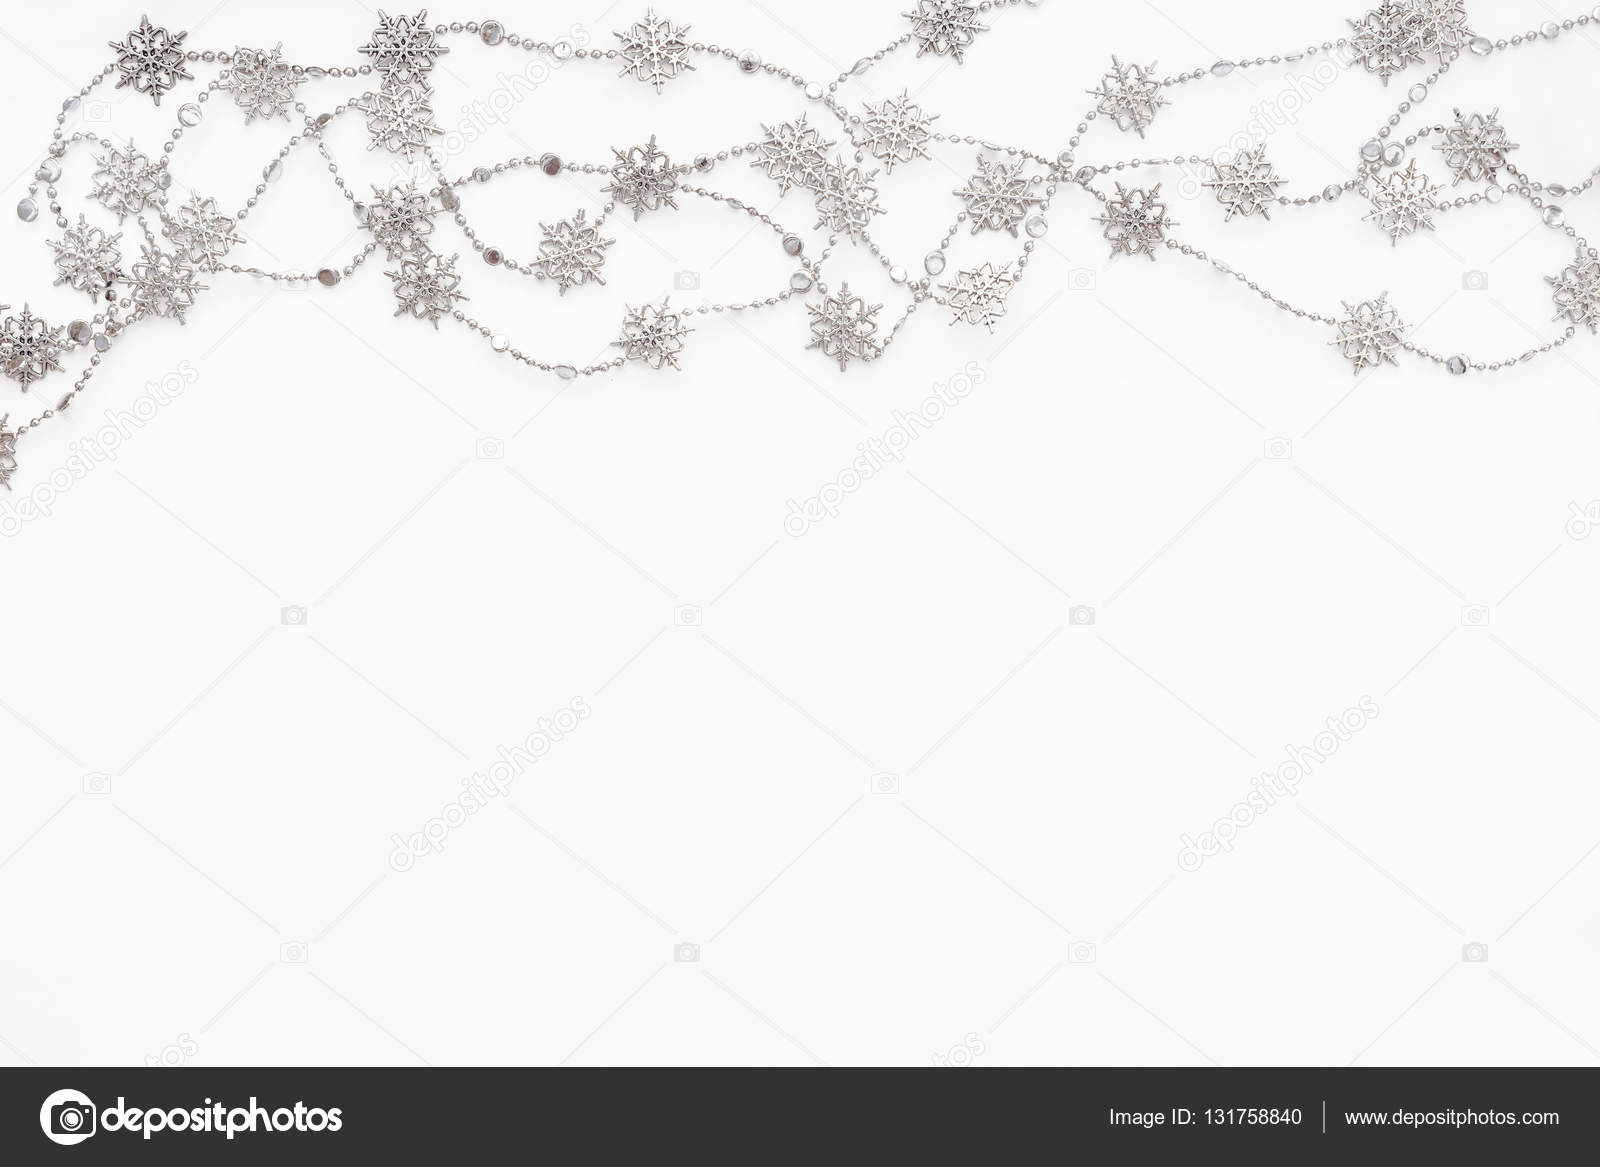 Clear White Background With Border Of Silver Chain With